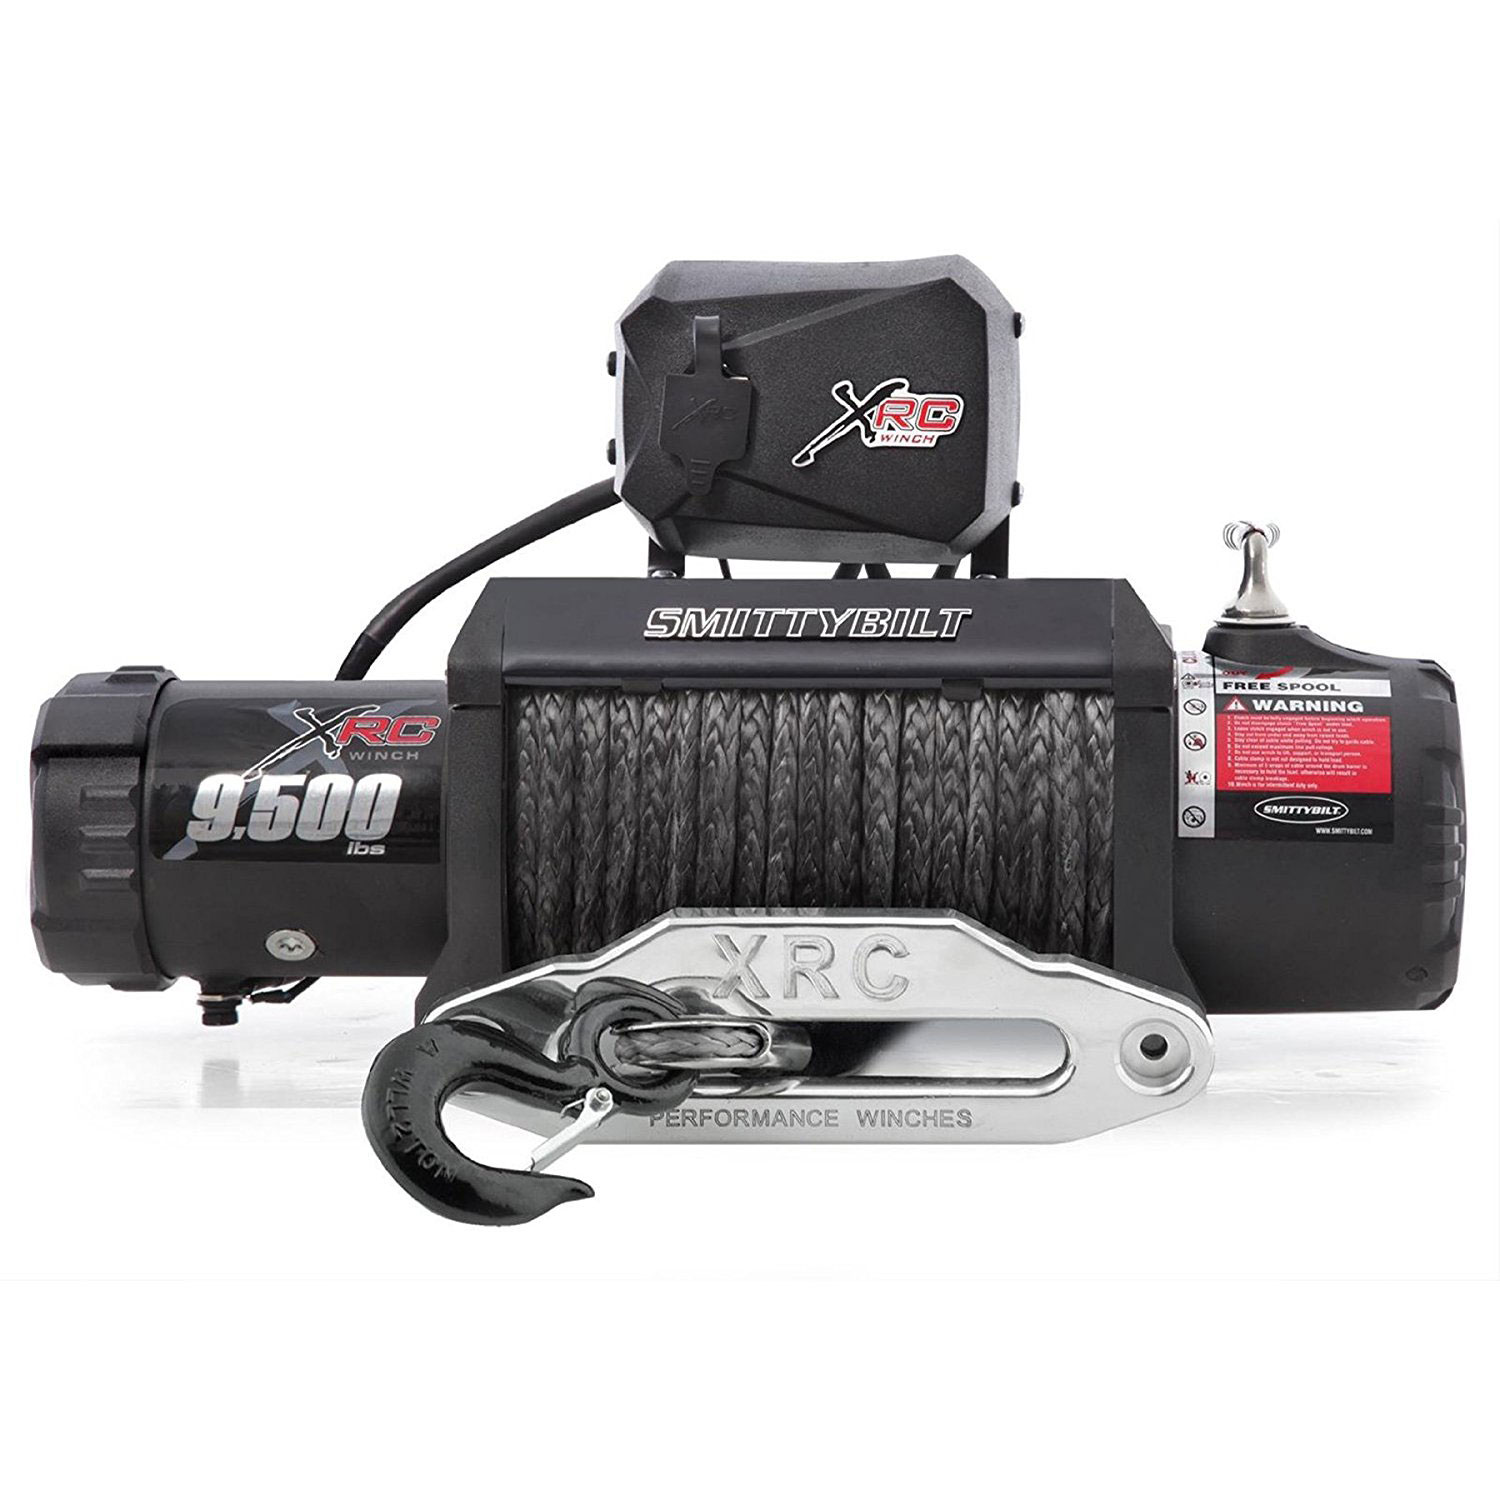 Smittybilt 98495 XRC-9.5 Gen2 Comp 9500 Lb 94 Foot Waterproof ATV Towing Winch